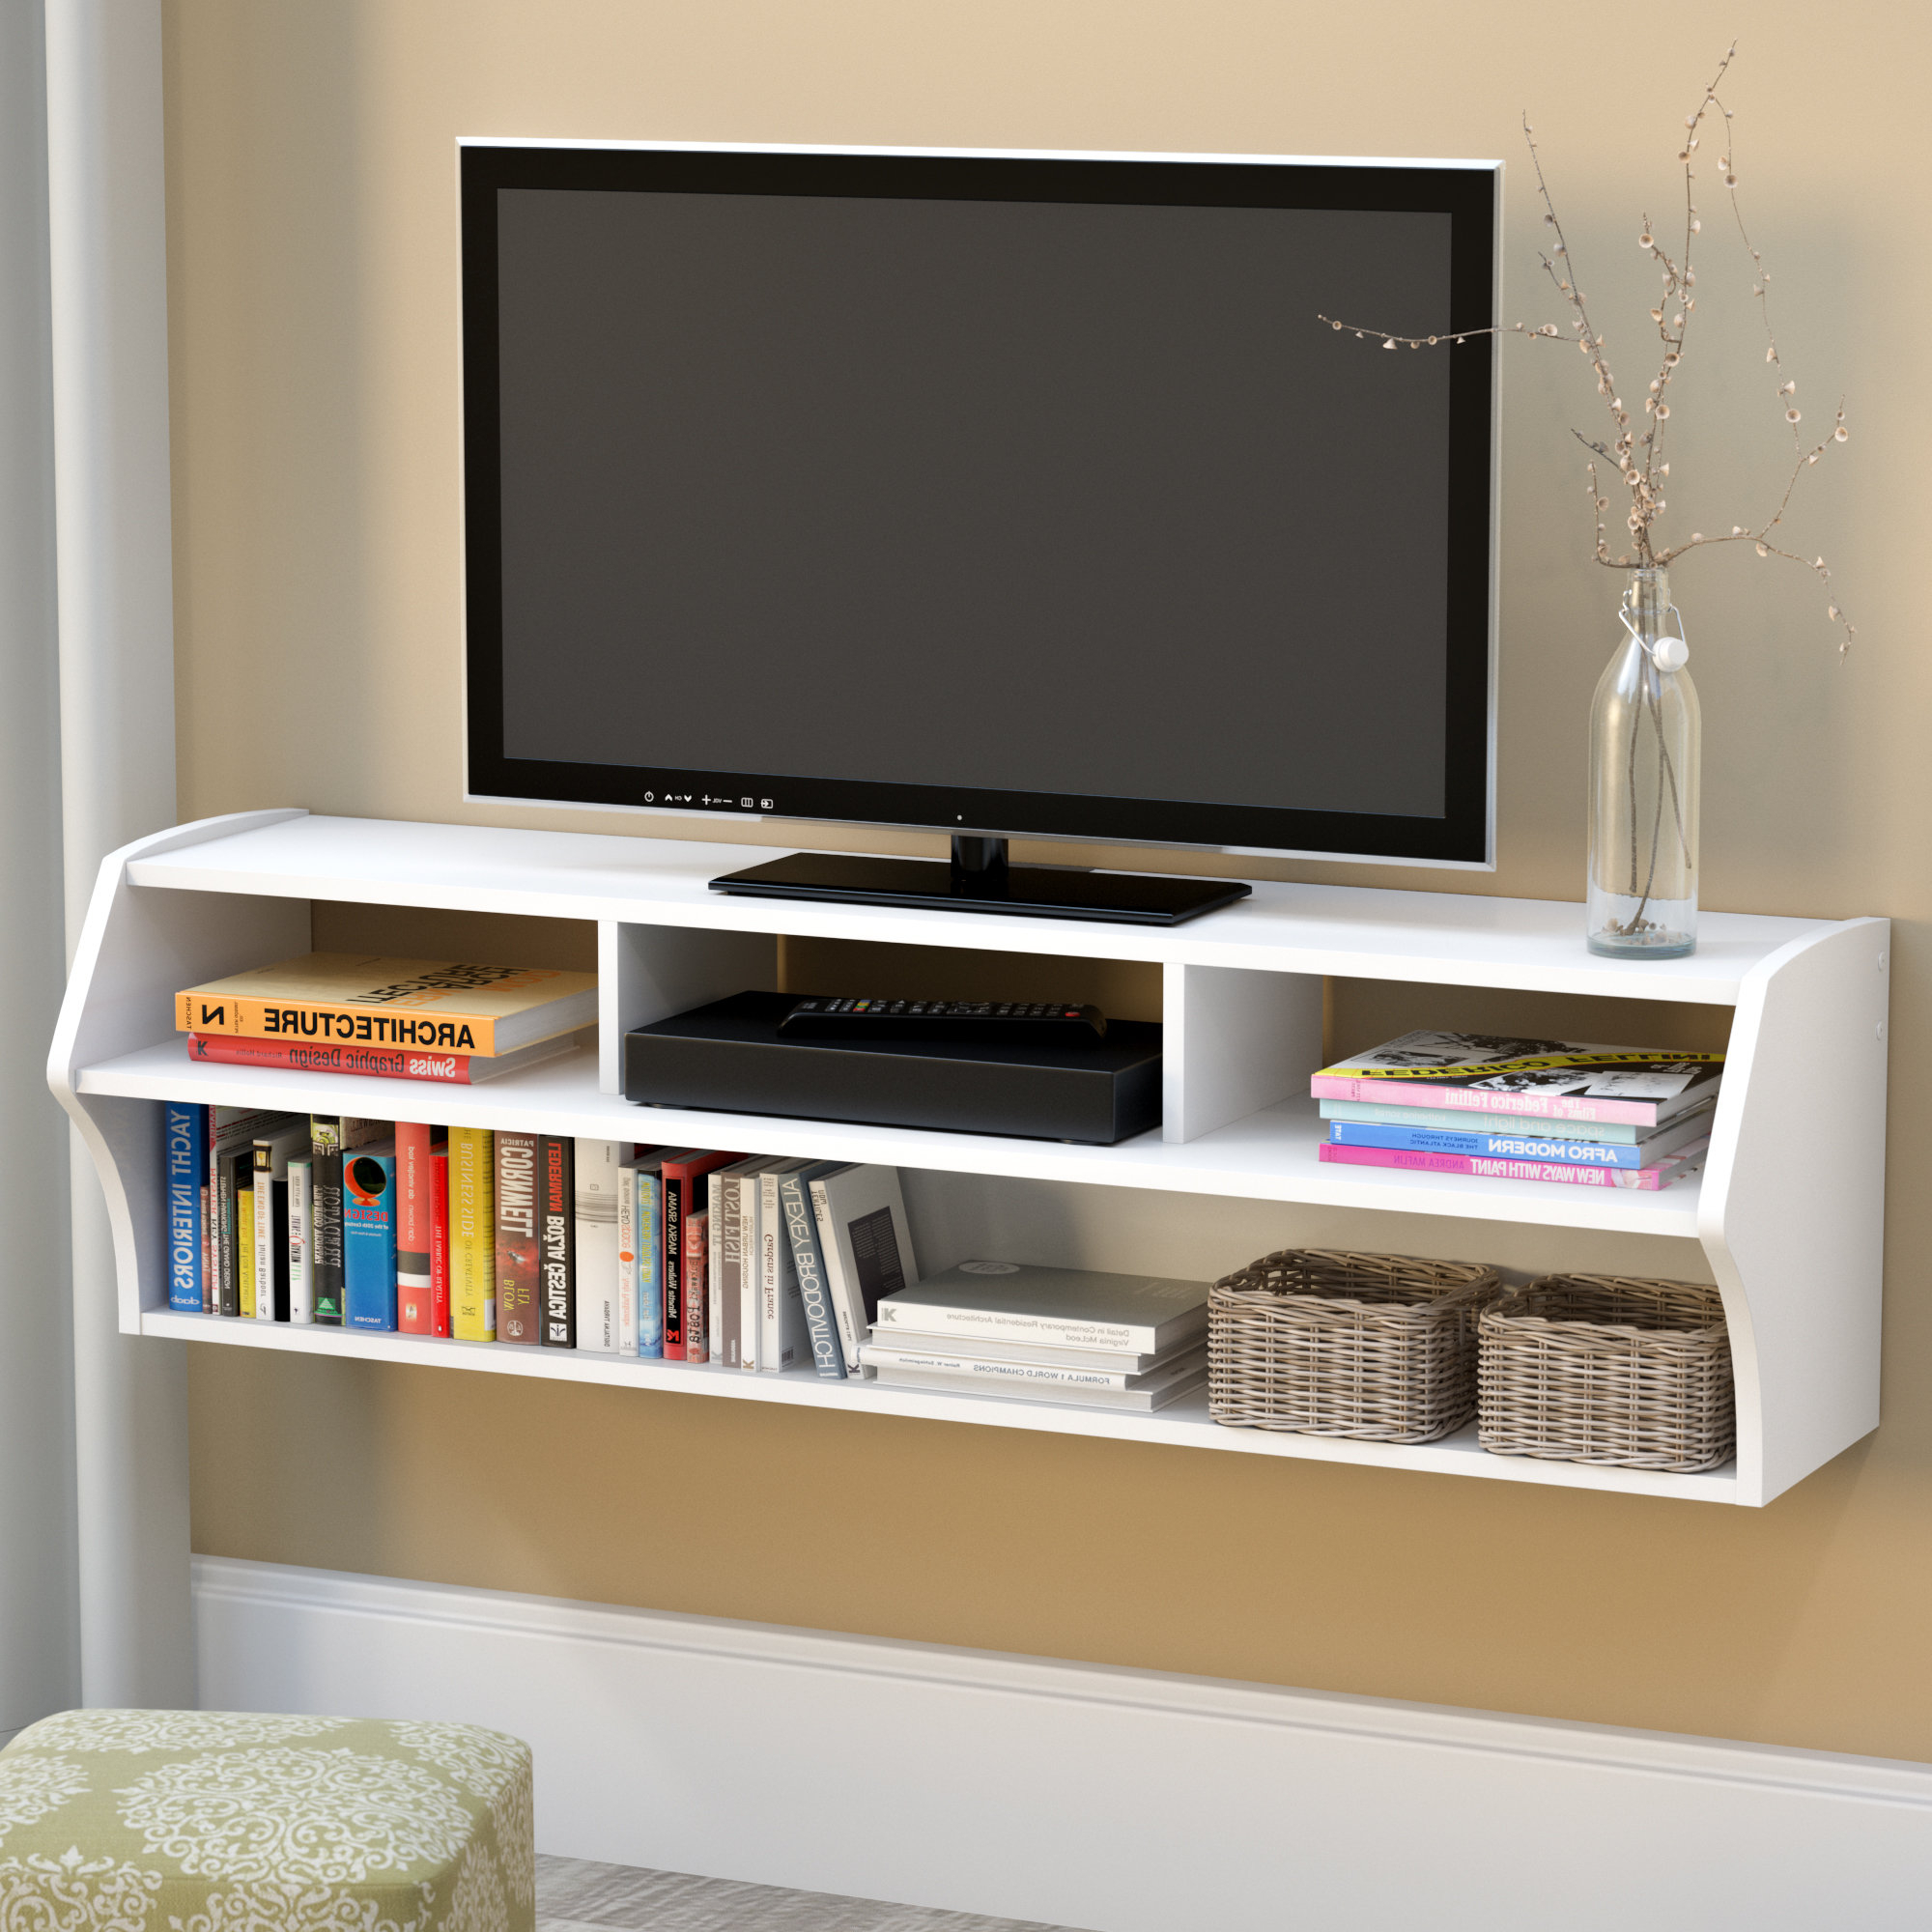 Most Recent Cato 60 Inch Tv Stands Inside Floating Shelves For Tv (View 3 of 20)